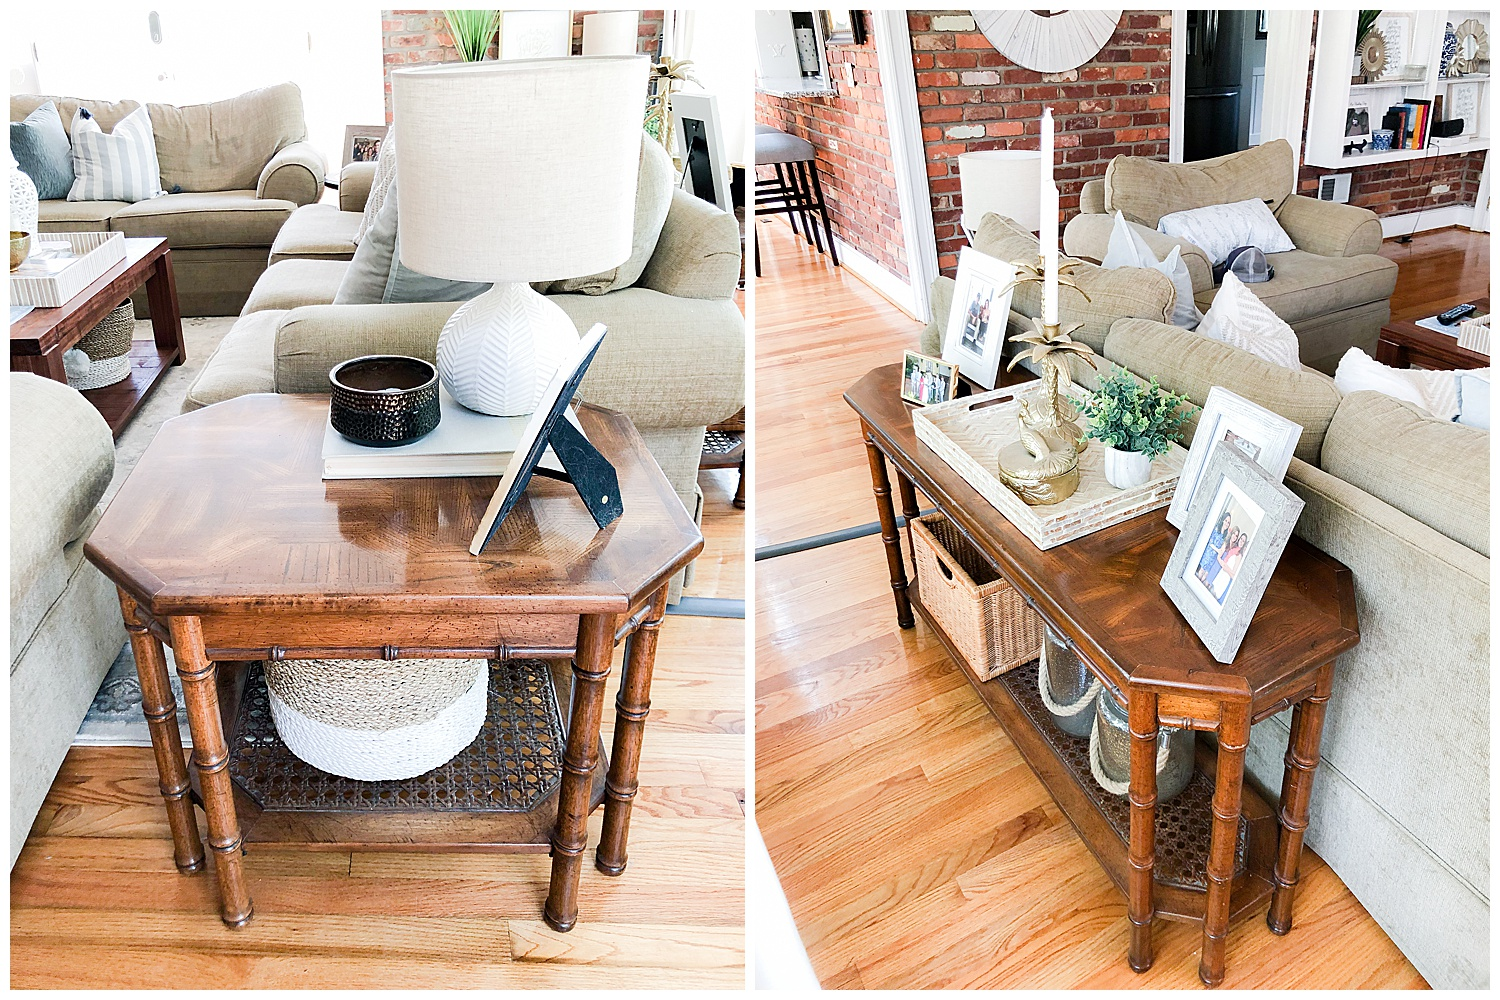 BAMBOO SIDE TABLE AND SOFA TABLE: $80